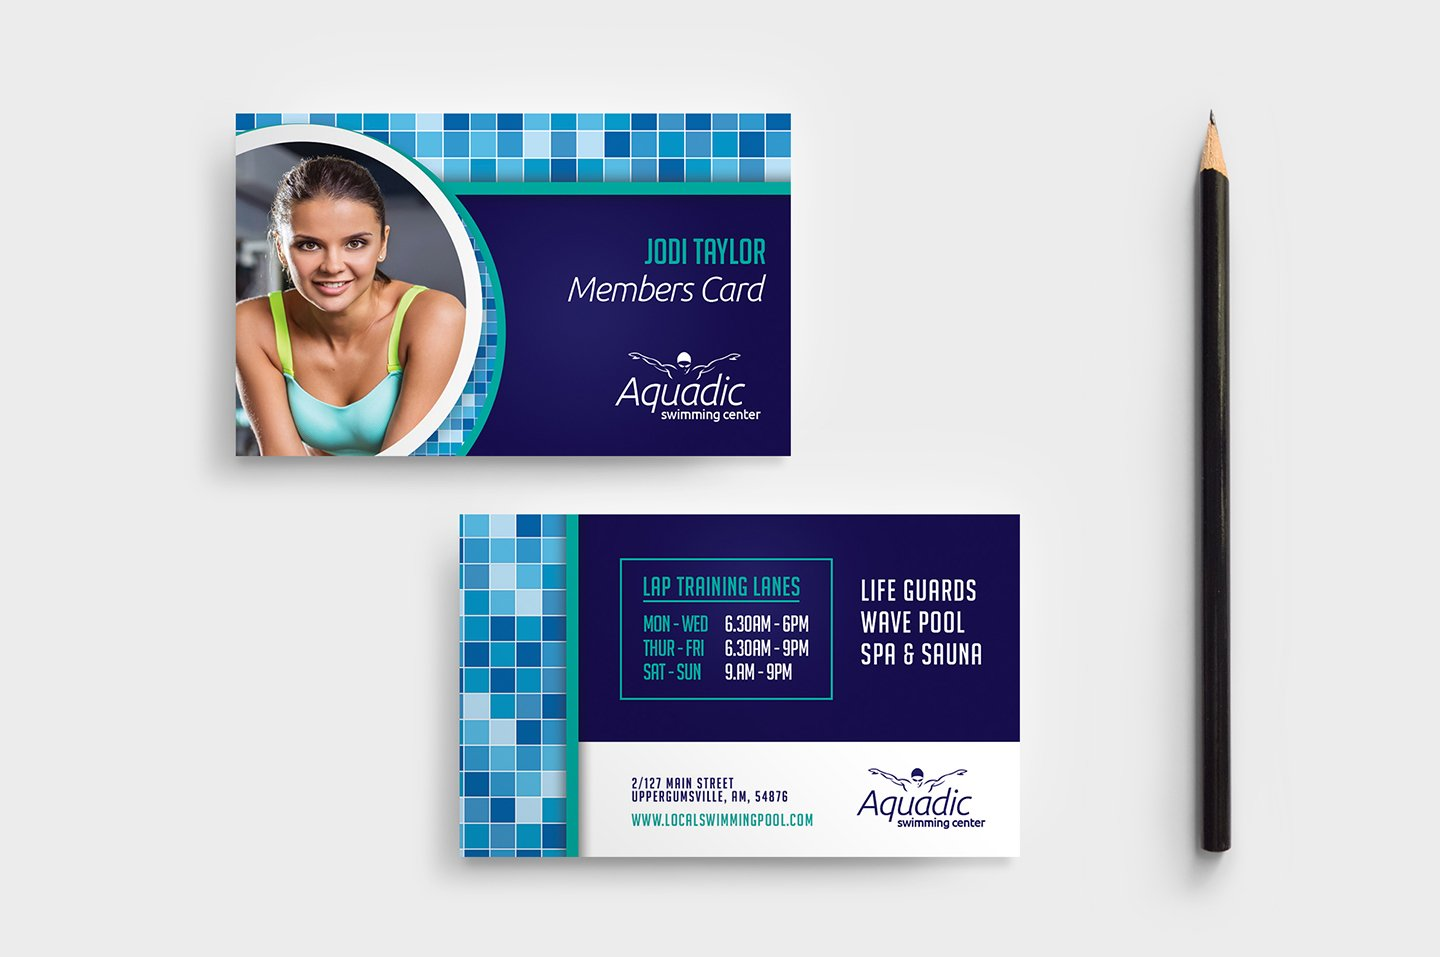 Swimming pool business card template business card templates swimming pool business card template business card templates creative market colourmoves